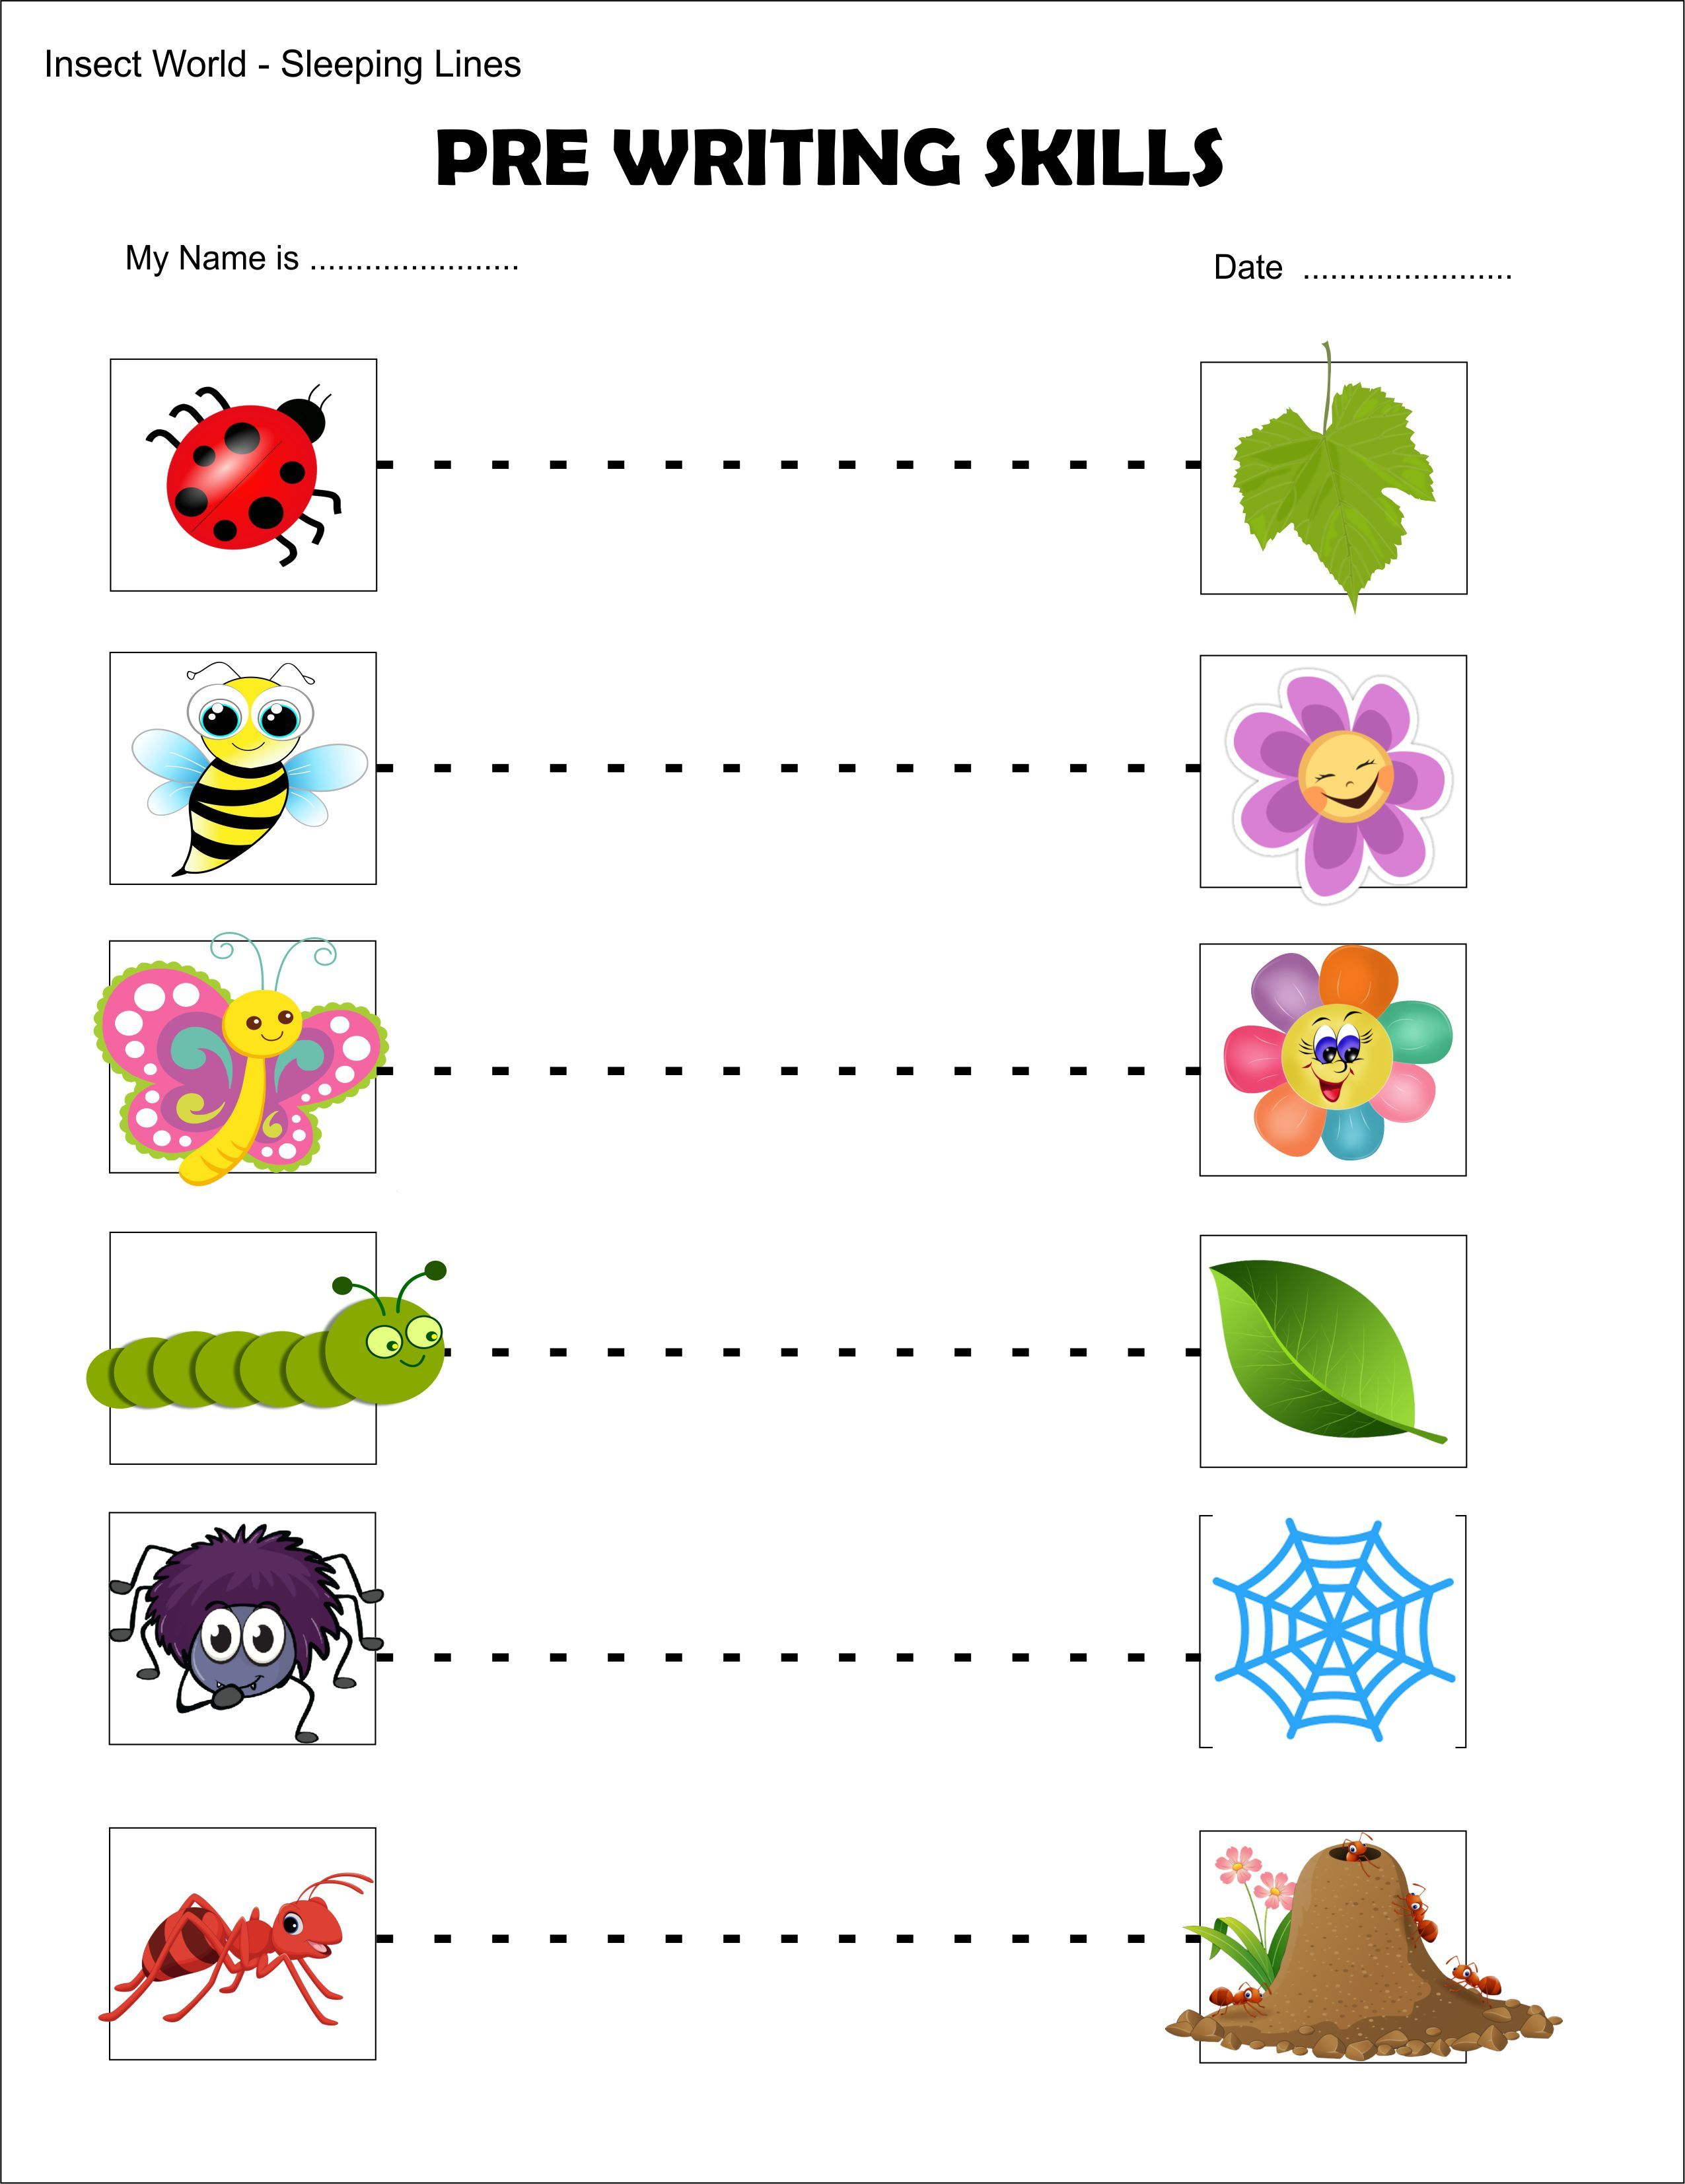 Sleeping Lines Insects Preworkingskills Toddler